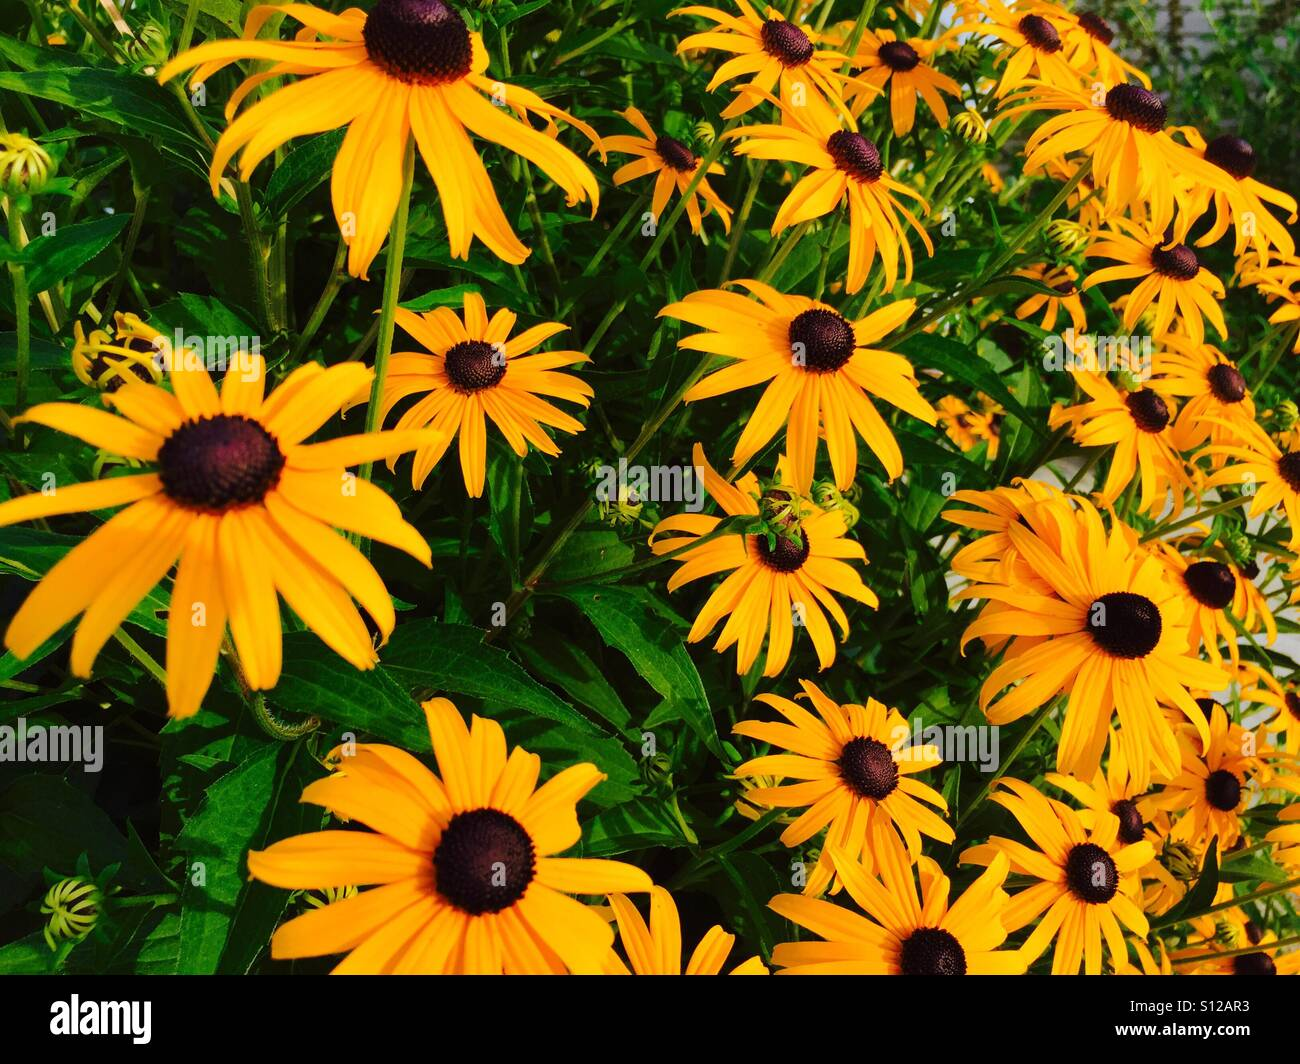 a769614f857b Yellow Maryland Stock Photos   Yellow Maryland Stock Images - Alamy